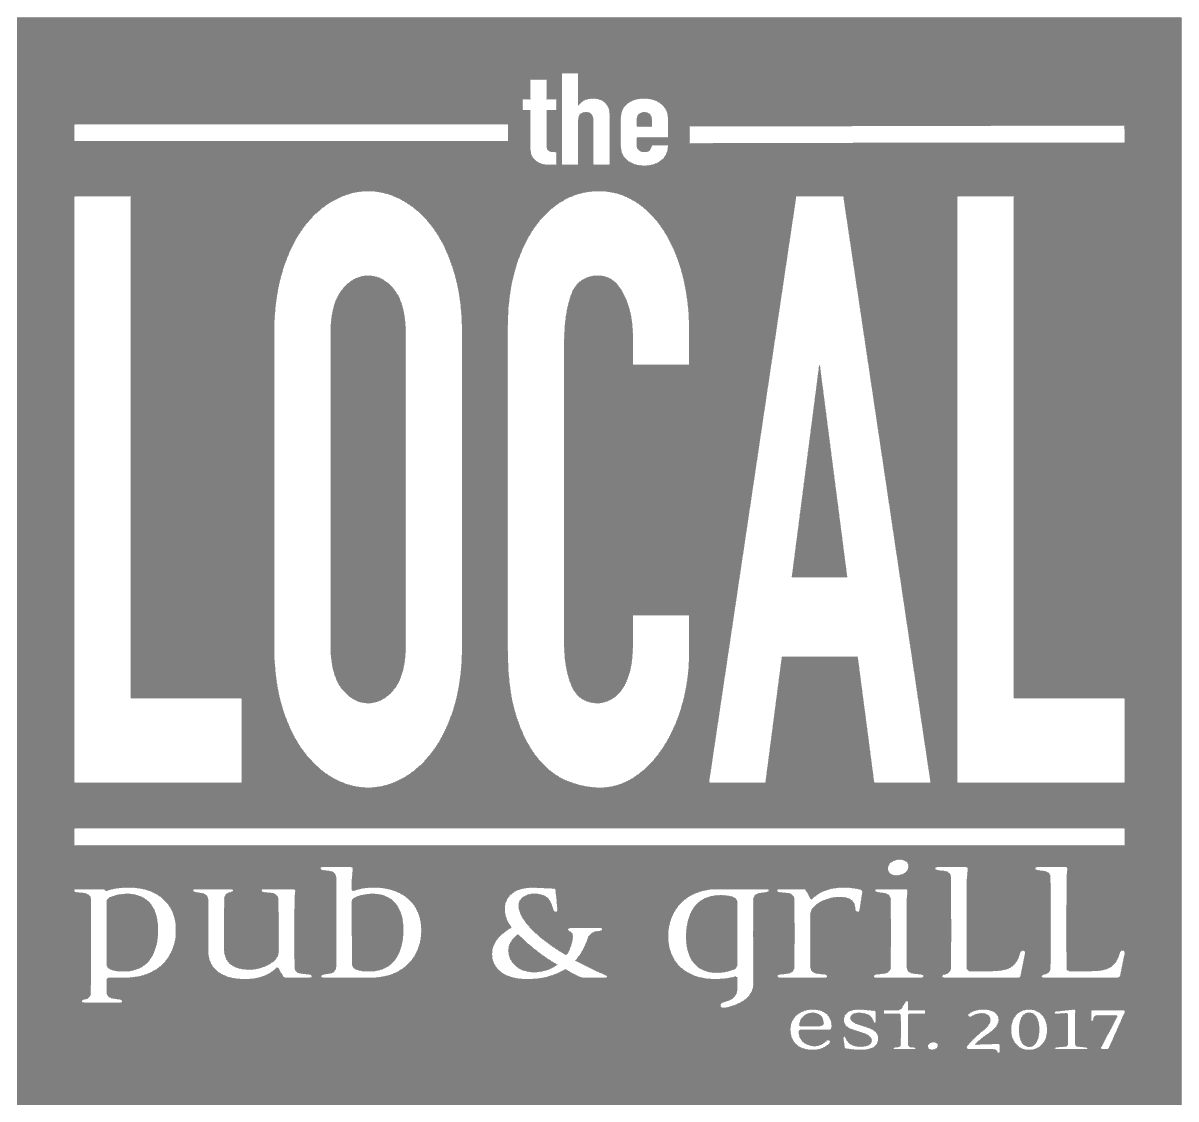 """The Local Pub and Grill in Valencia, Santa Clarita. Your """"Local"""" place to pub, grub, watch a game, play a game, listen to music and enjoy family and friends!!!!"""